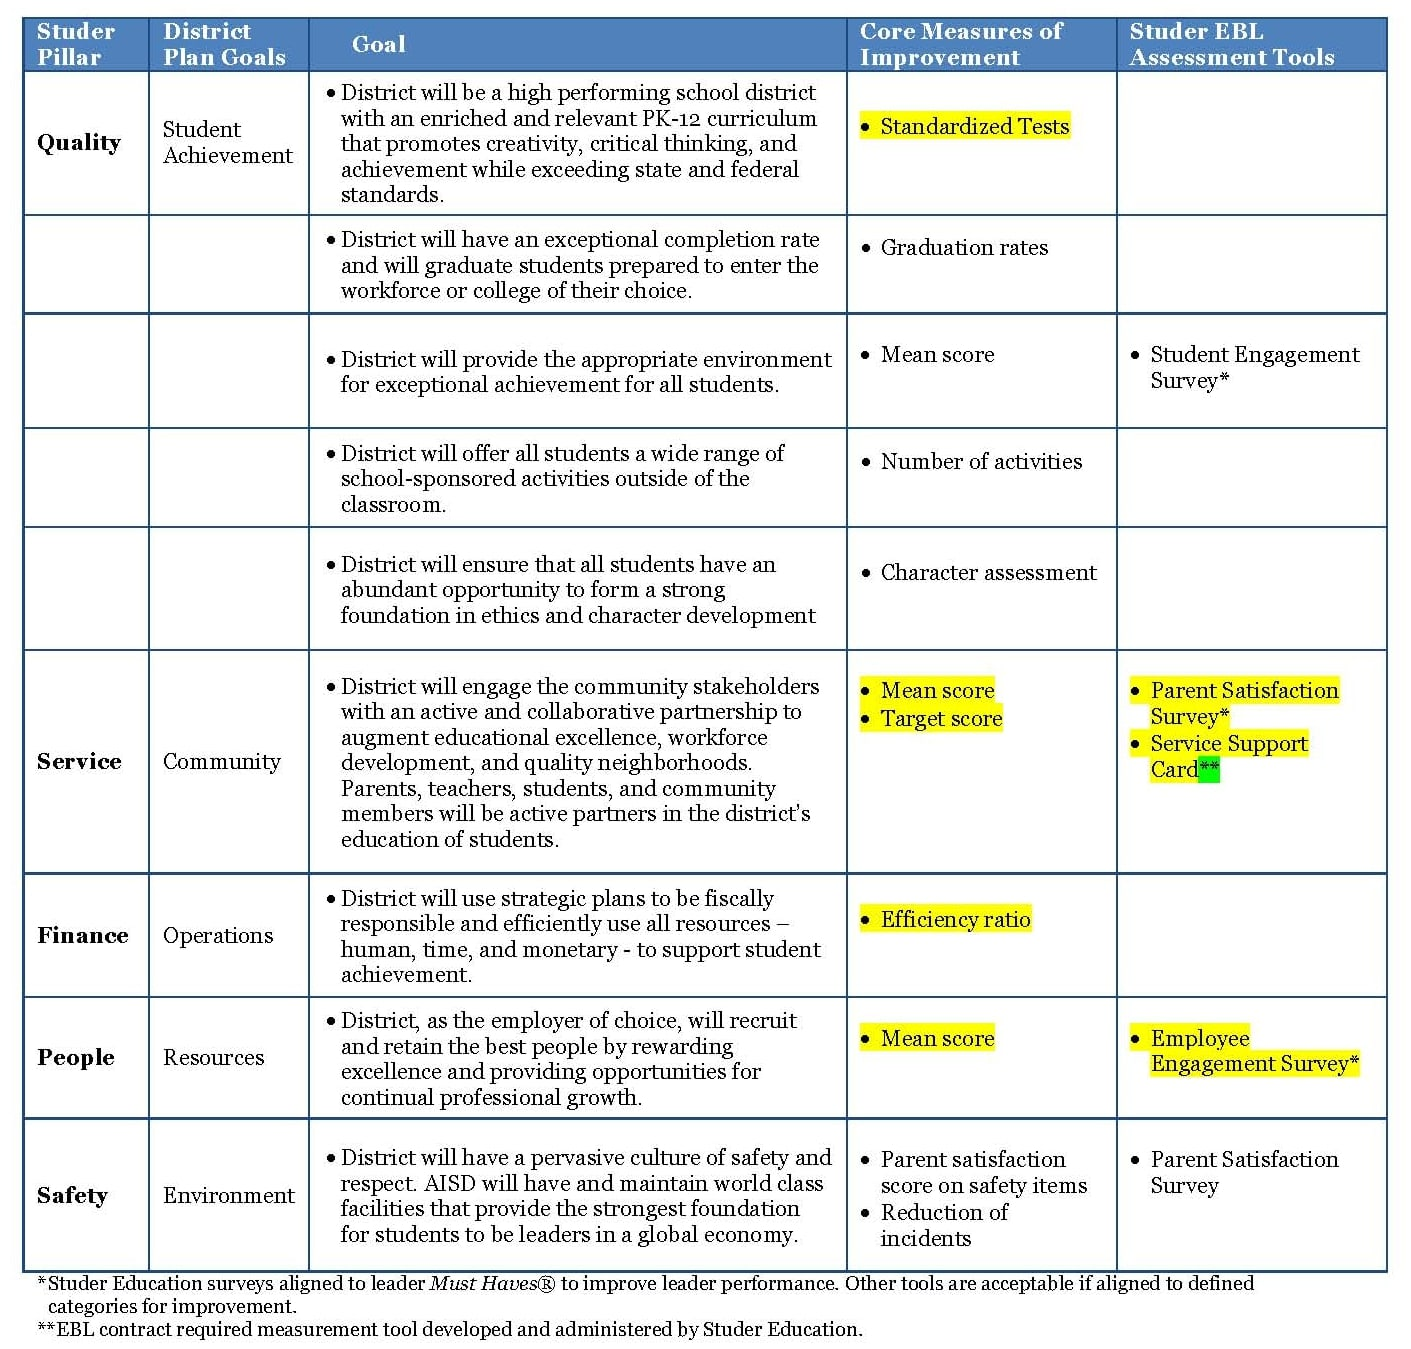 College Strategic Plan Matrix Example